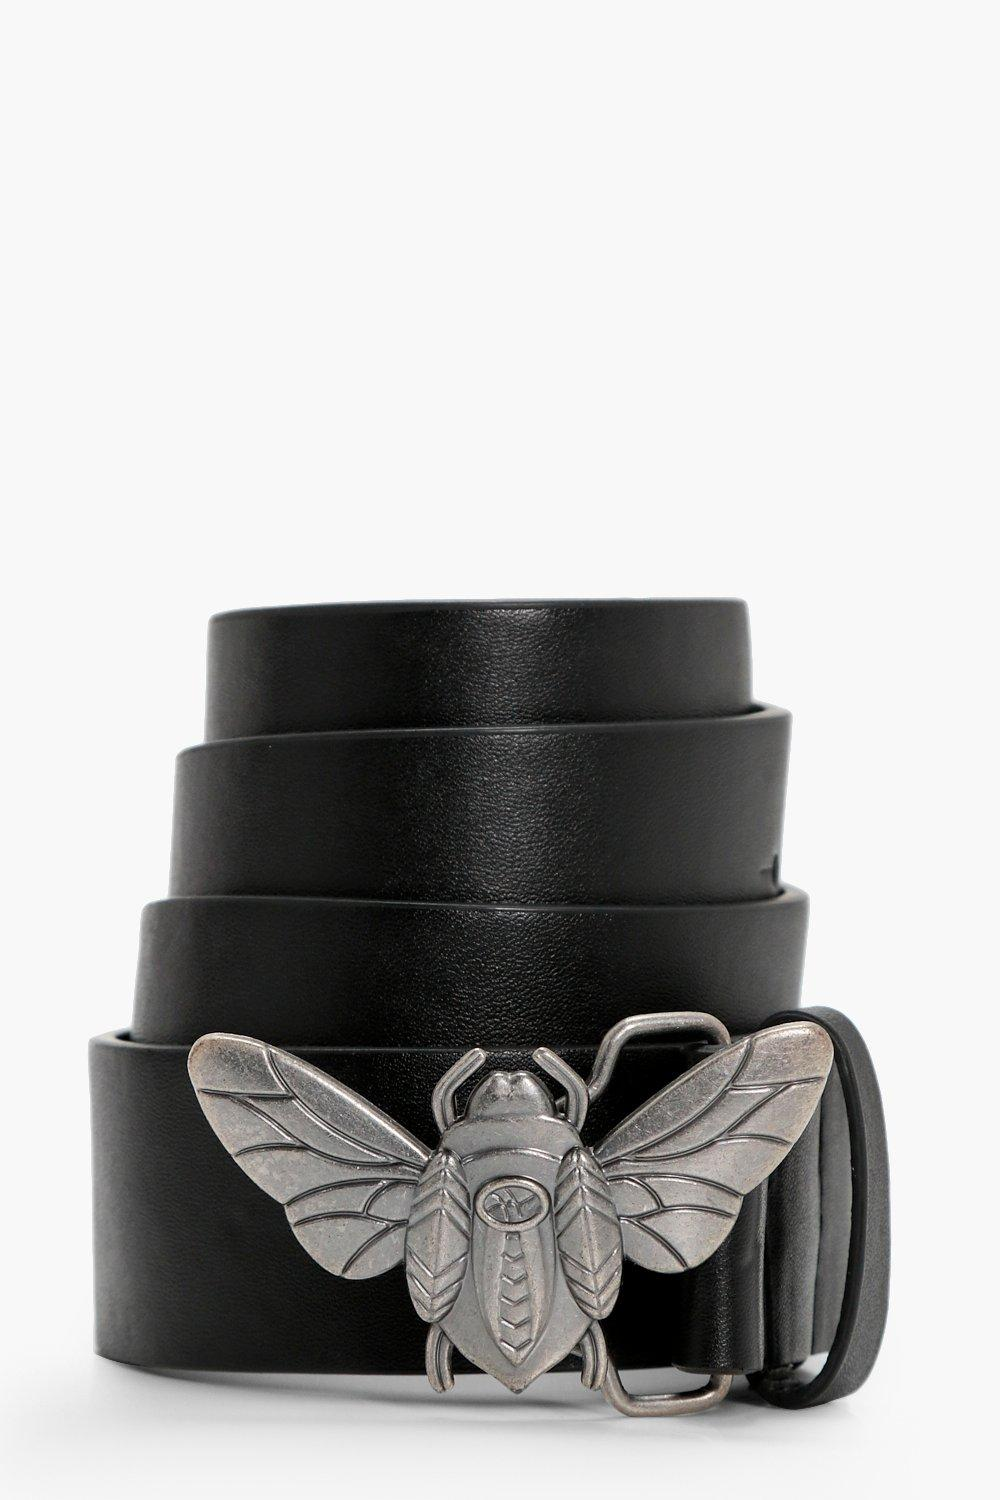 Bug Buckle Boyfriend Belt - black - Kirsten Bug Bu